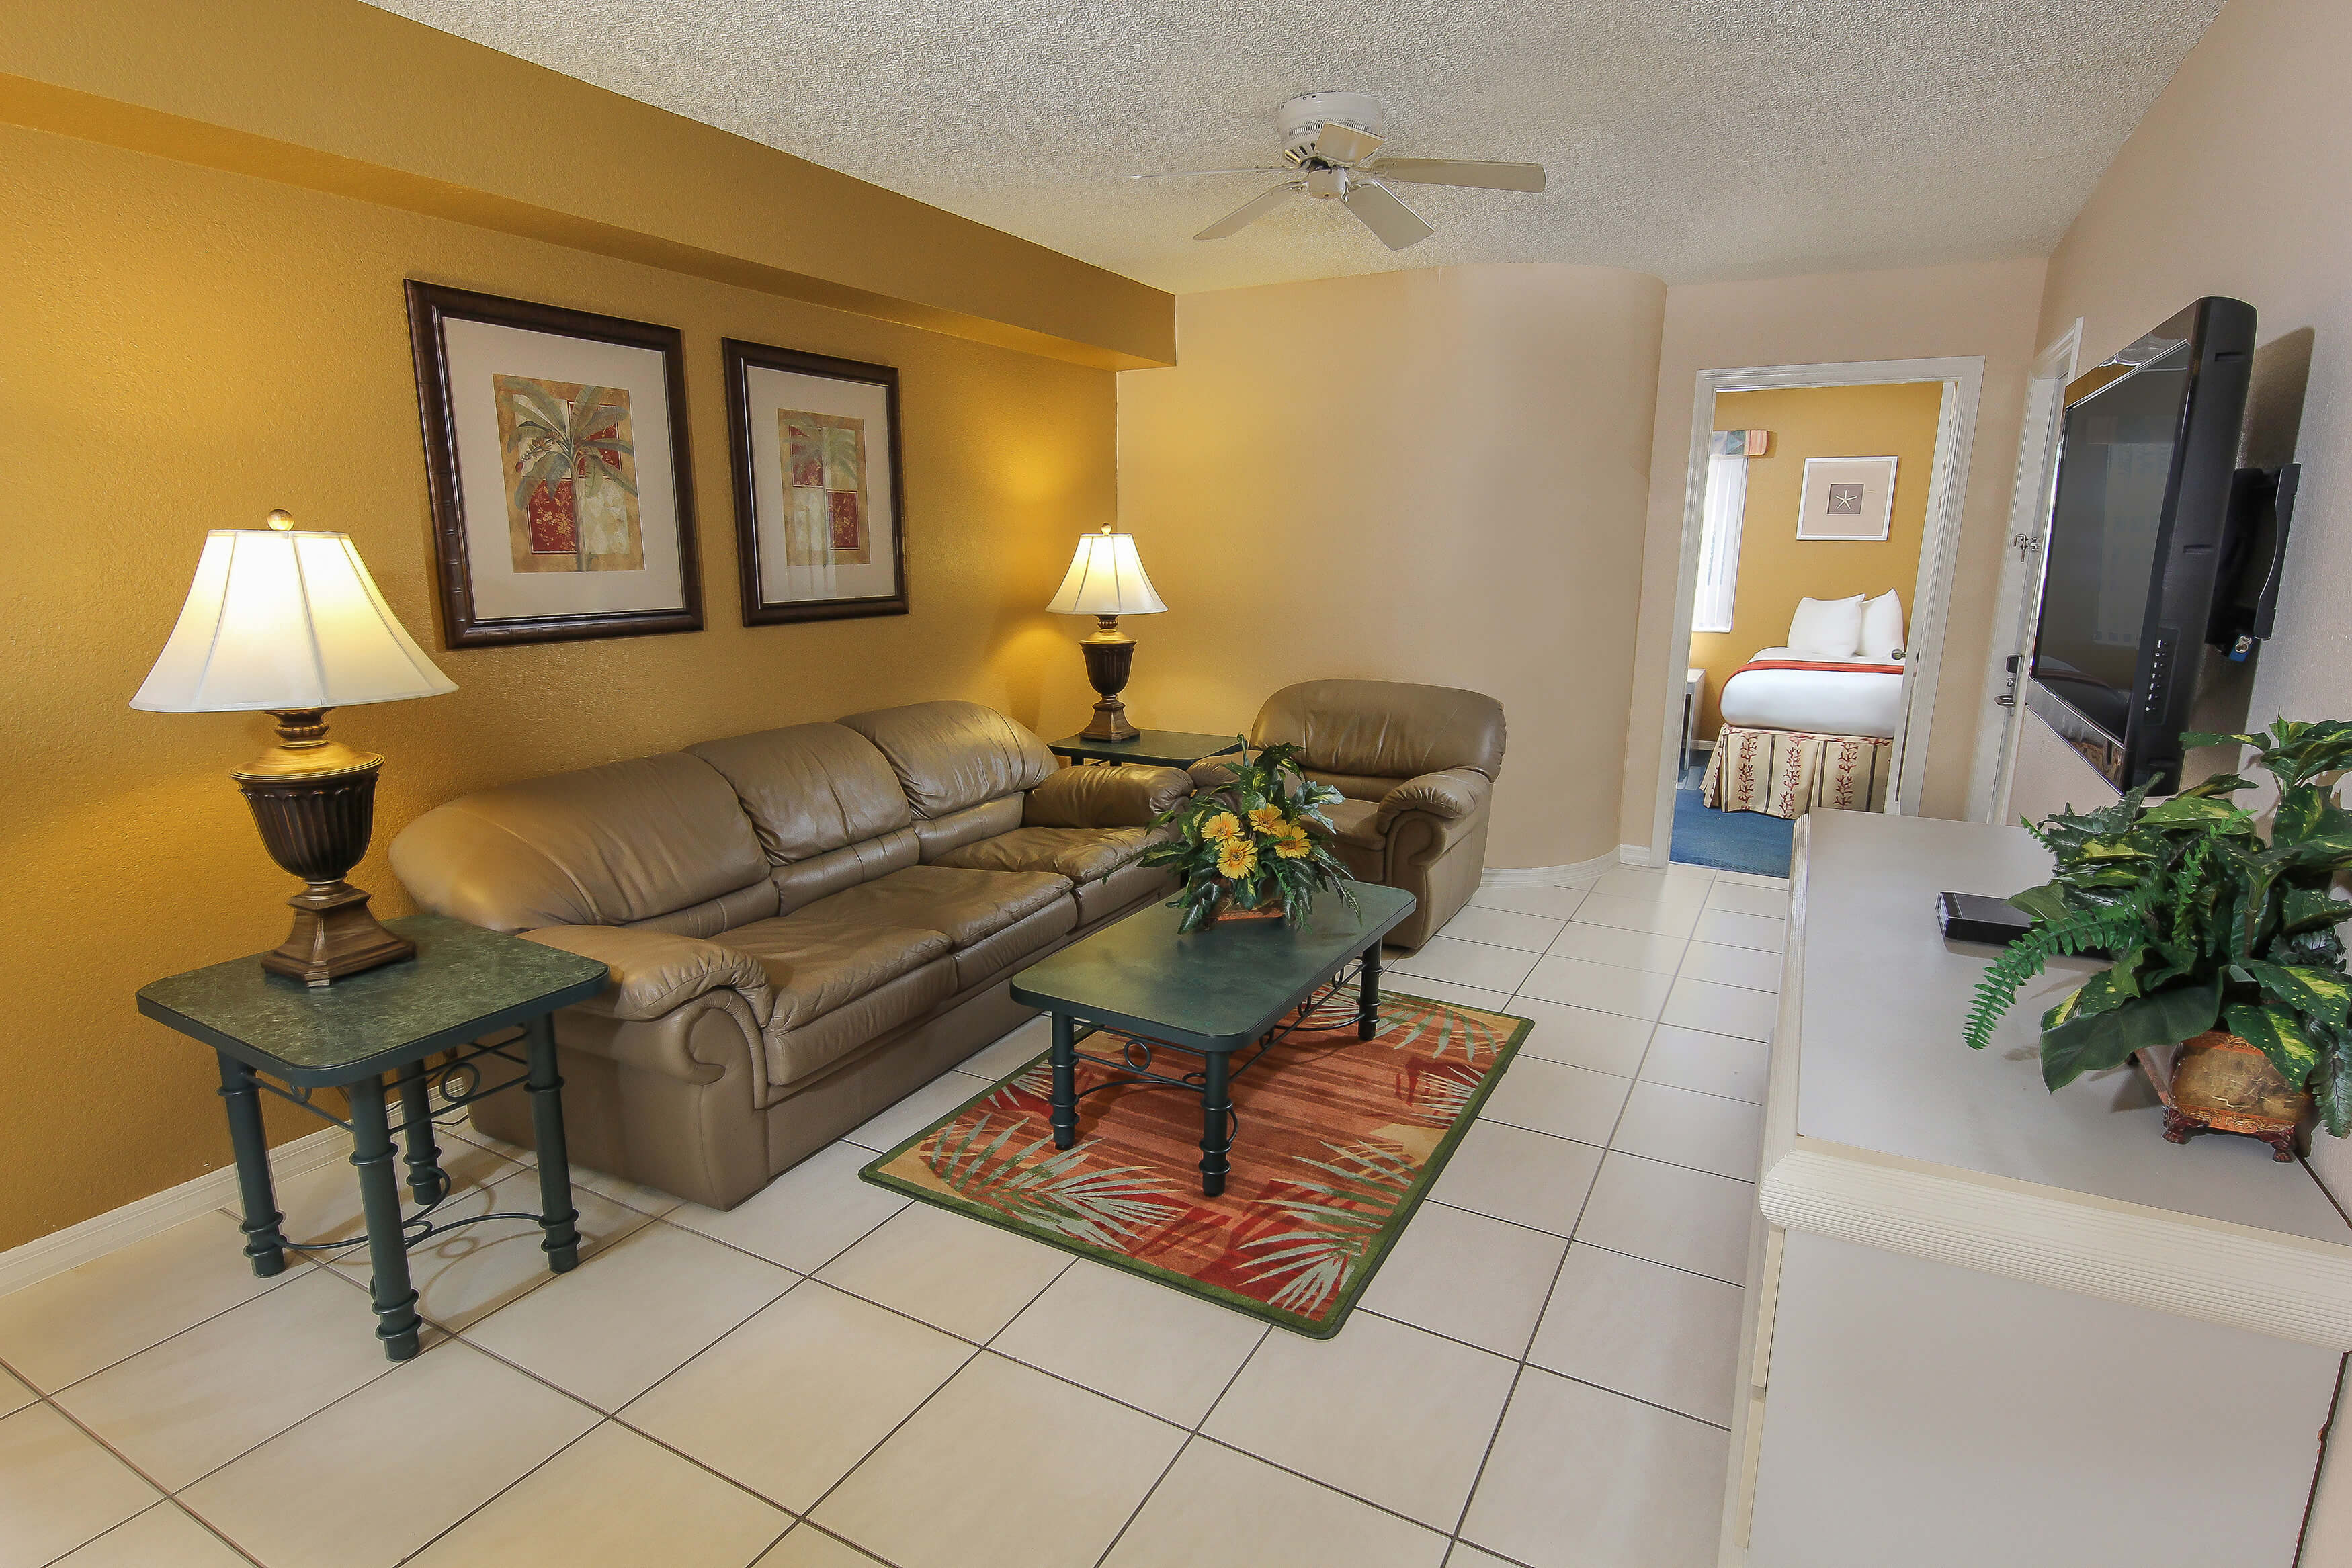 2 Bedroom Suites in Orlando  Westgate Vacation Villas